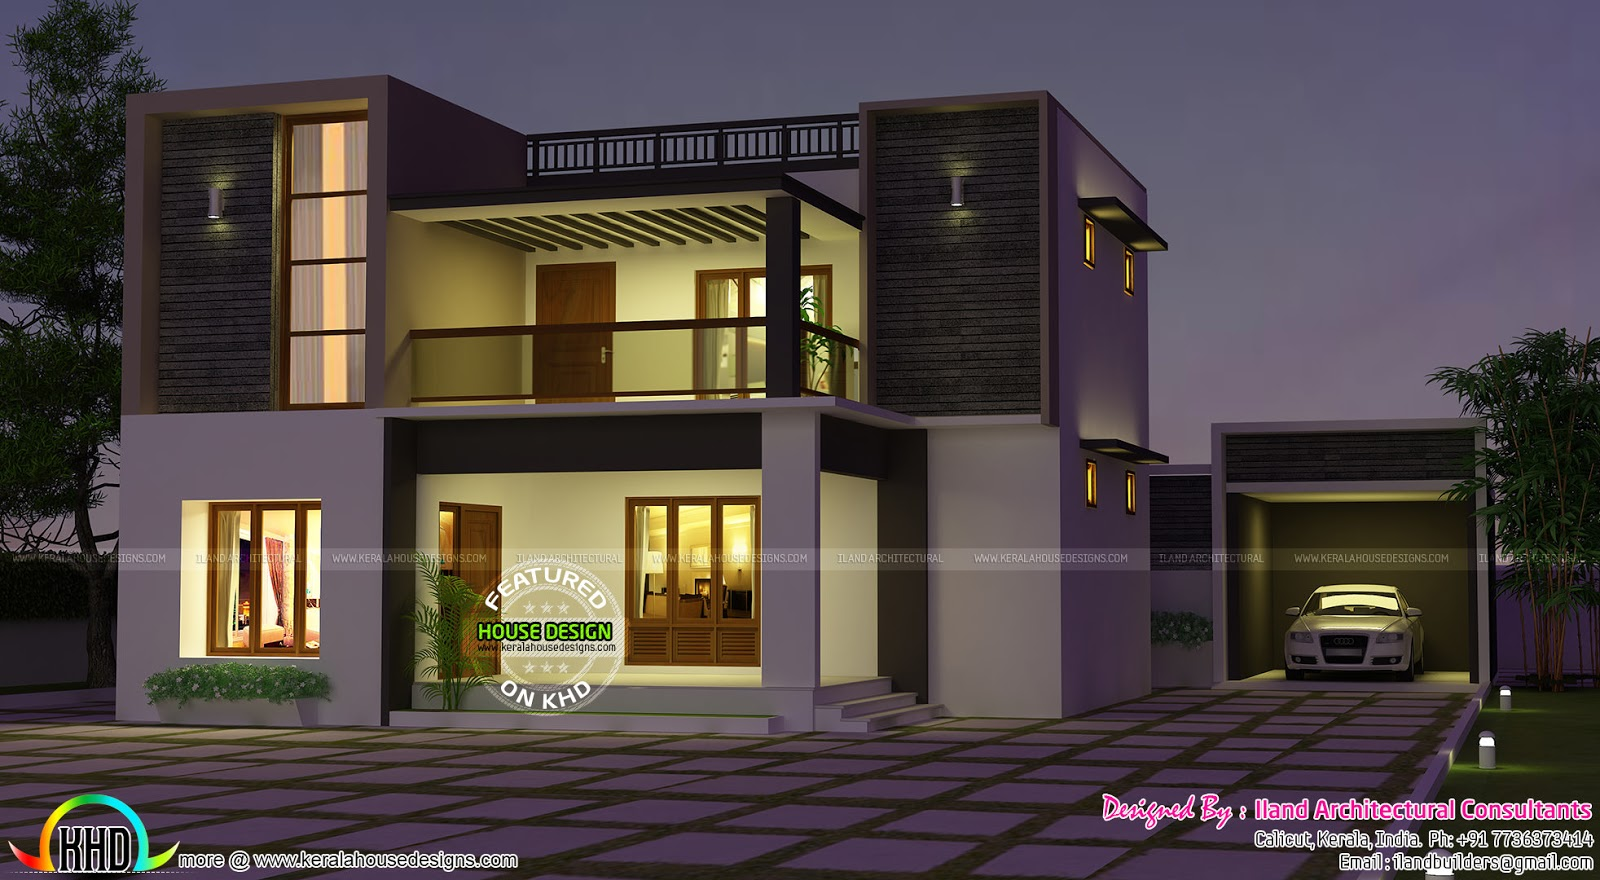 Flat Roof 3680 Sq Ft 3 Bedroom Home Kerala Home Design And Floor Plans